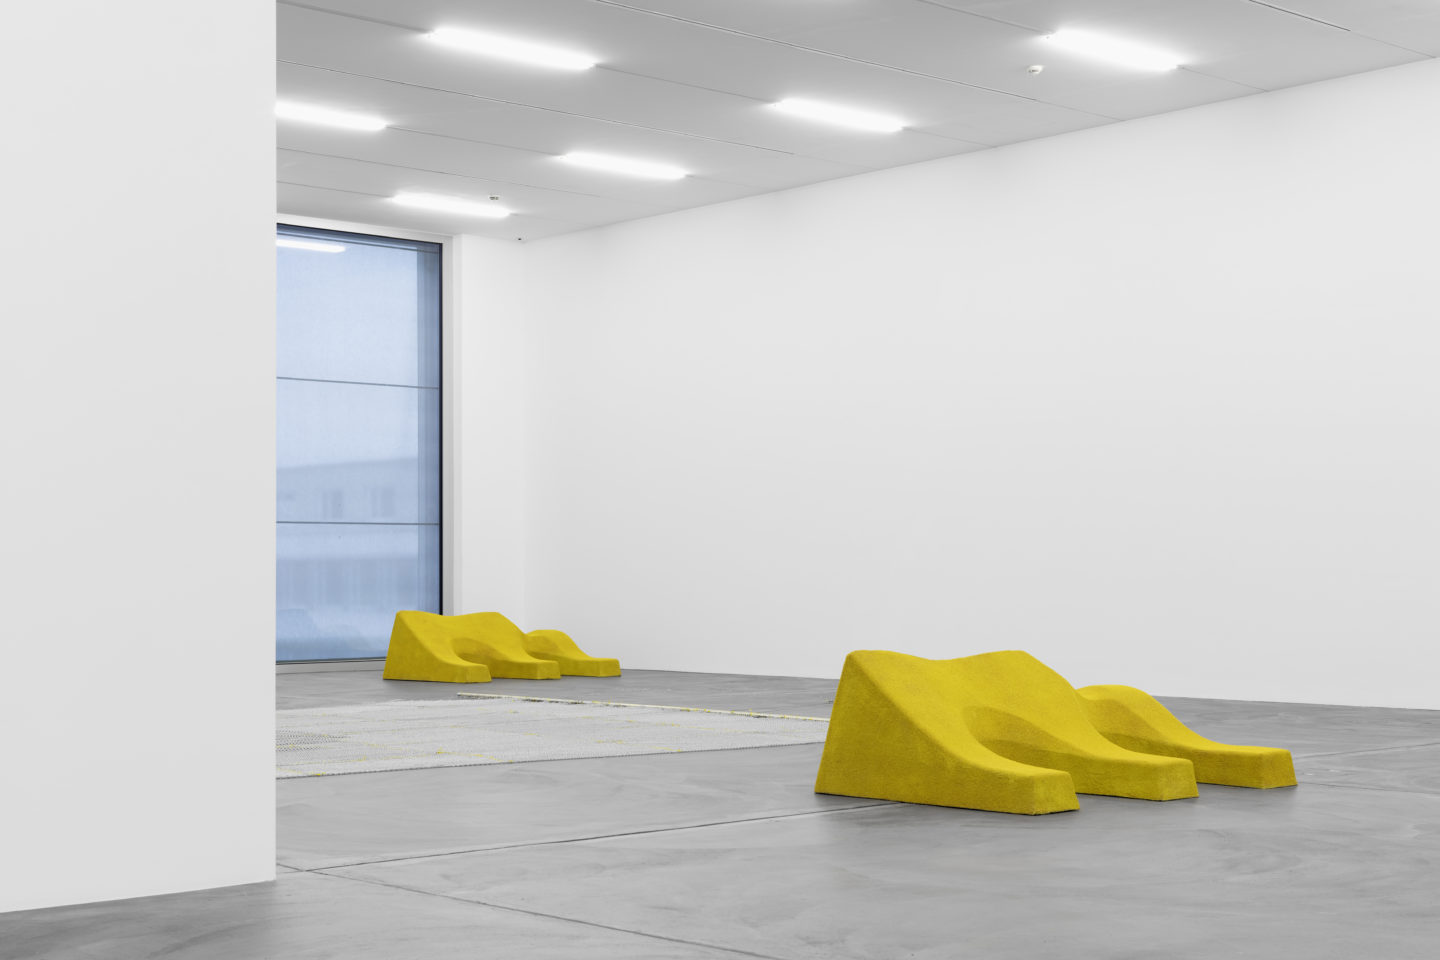 "Exhibition view, Lena Henke ""An Idea of Late German Sculpture; To the People of New York, 2018"", Kunsthalle Zürich, 2018 / Photo: Gunnar Meier Photography"